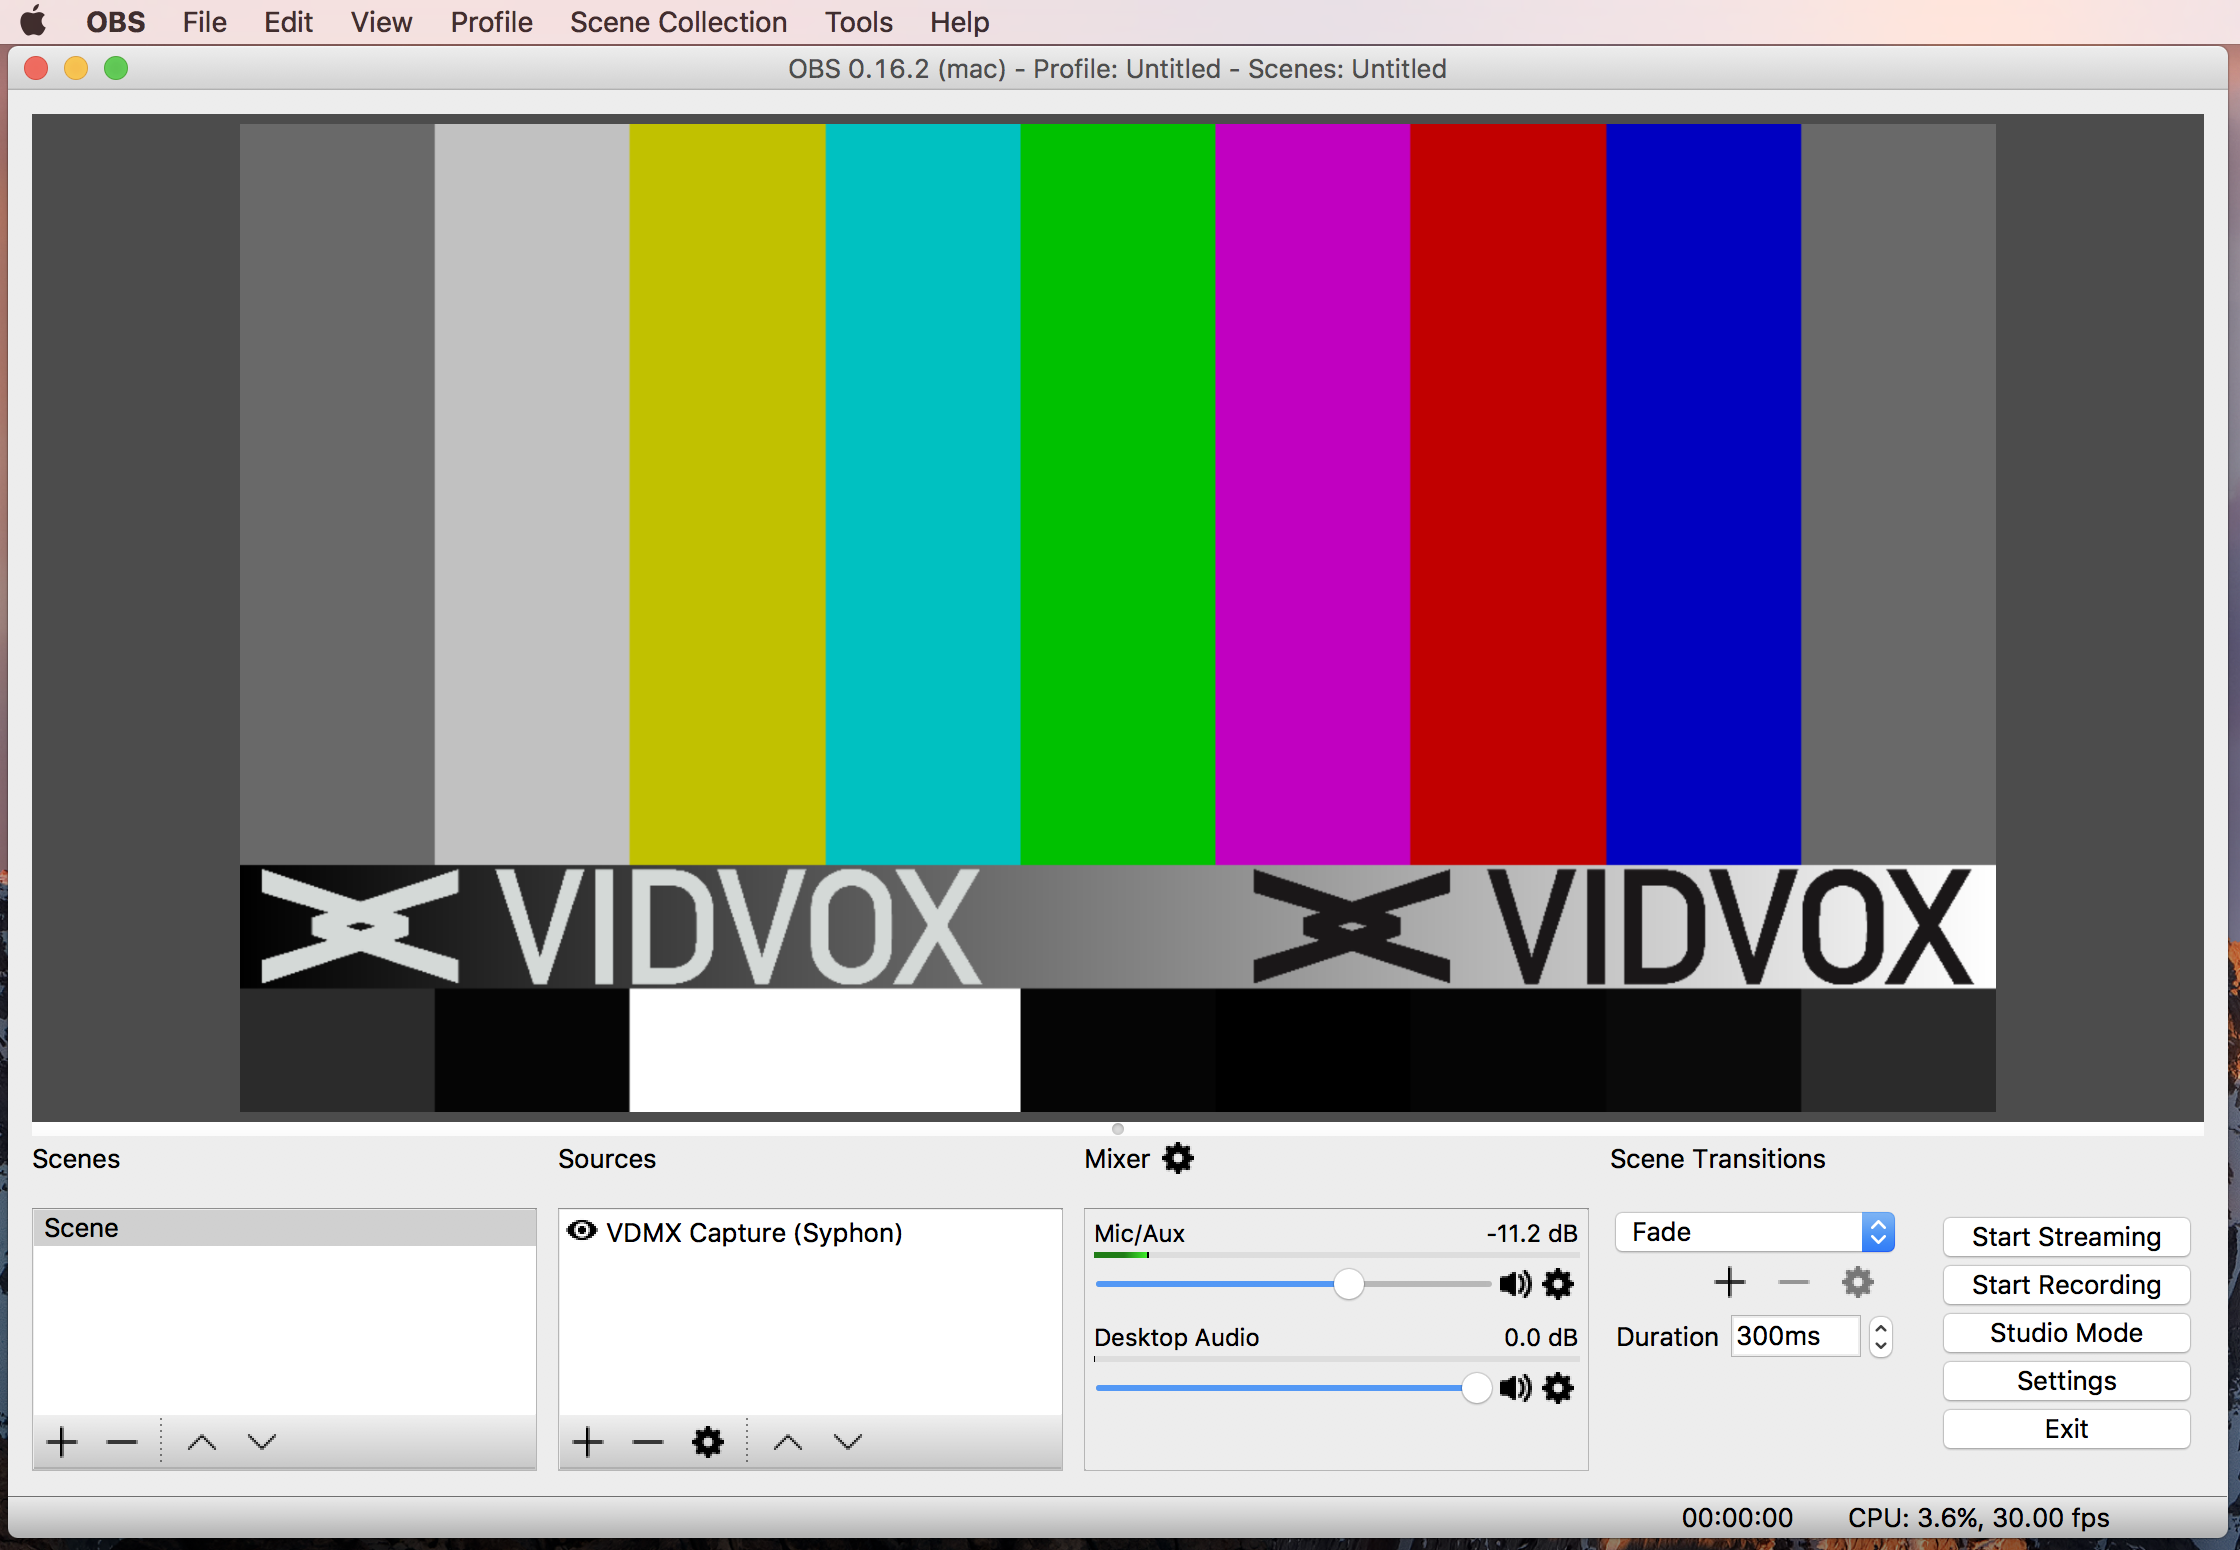 Use OBS to receive Syphon from VDMX and stream to Twitch.